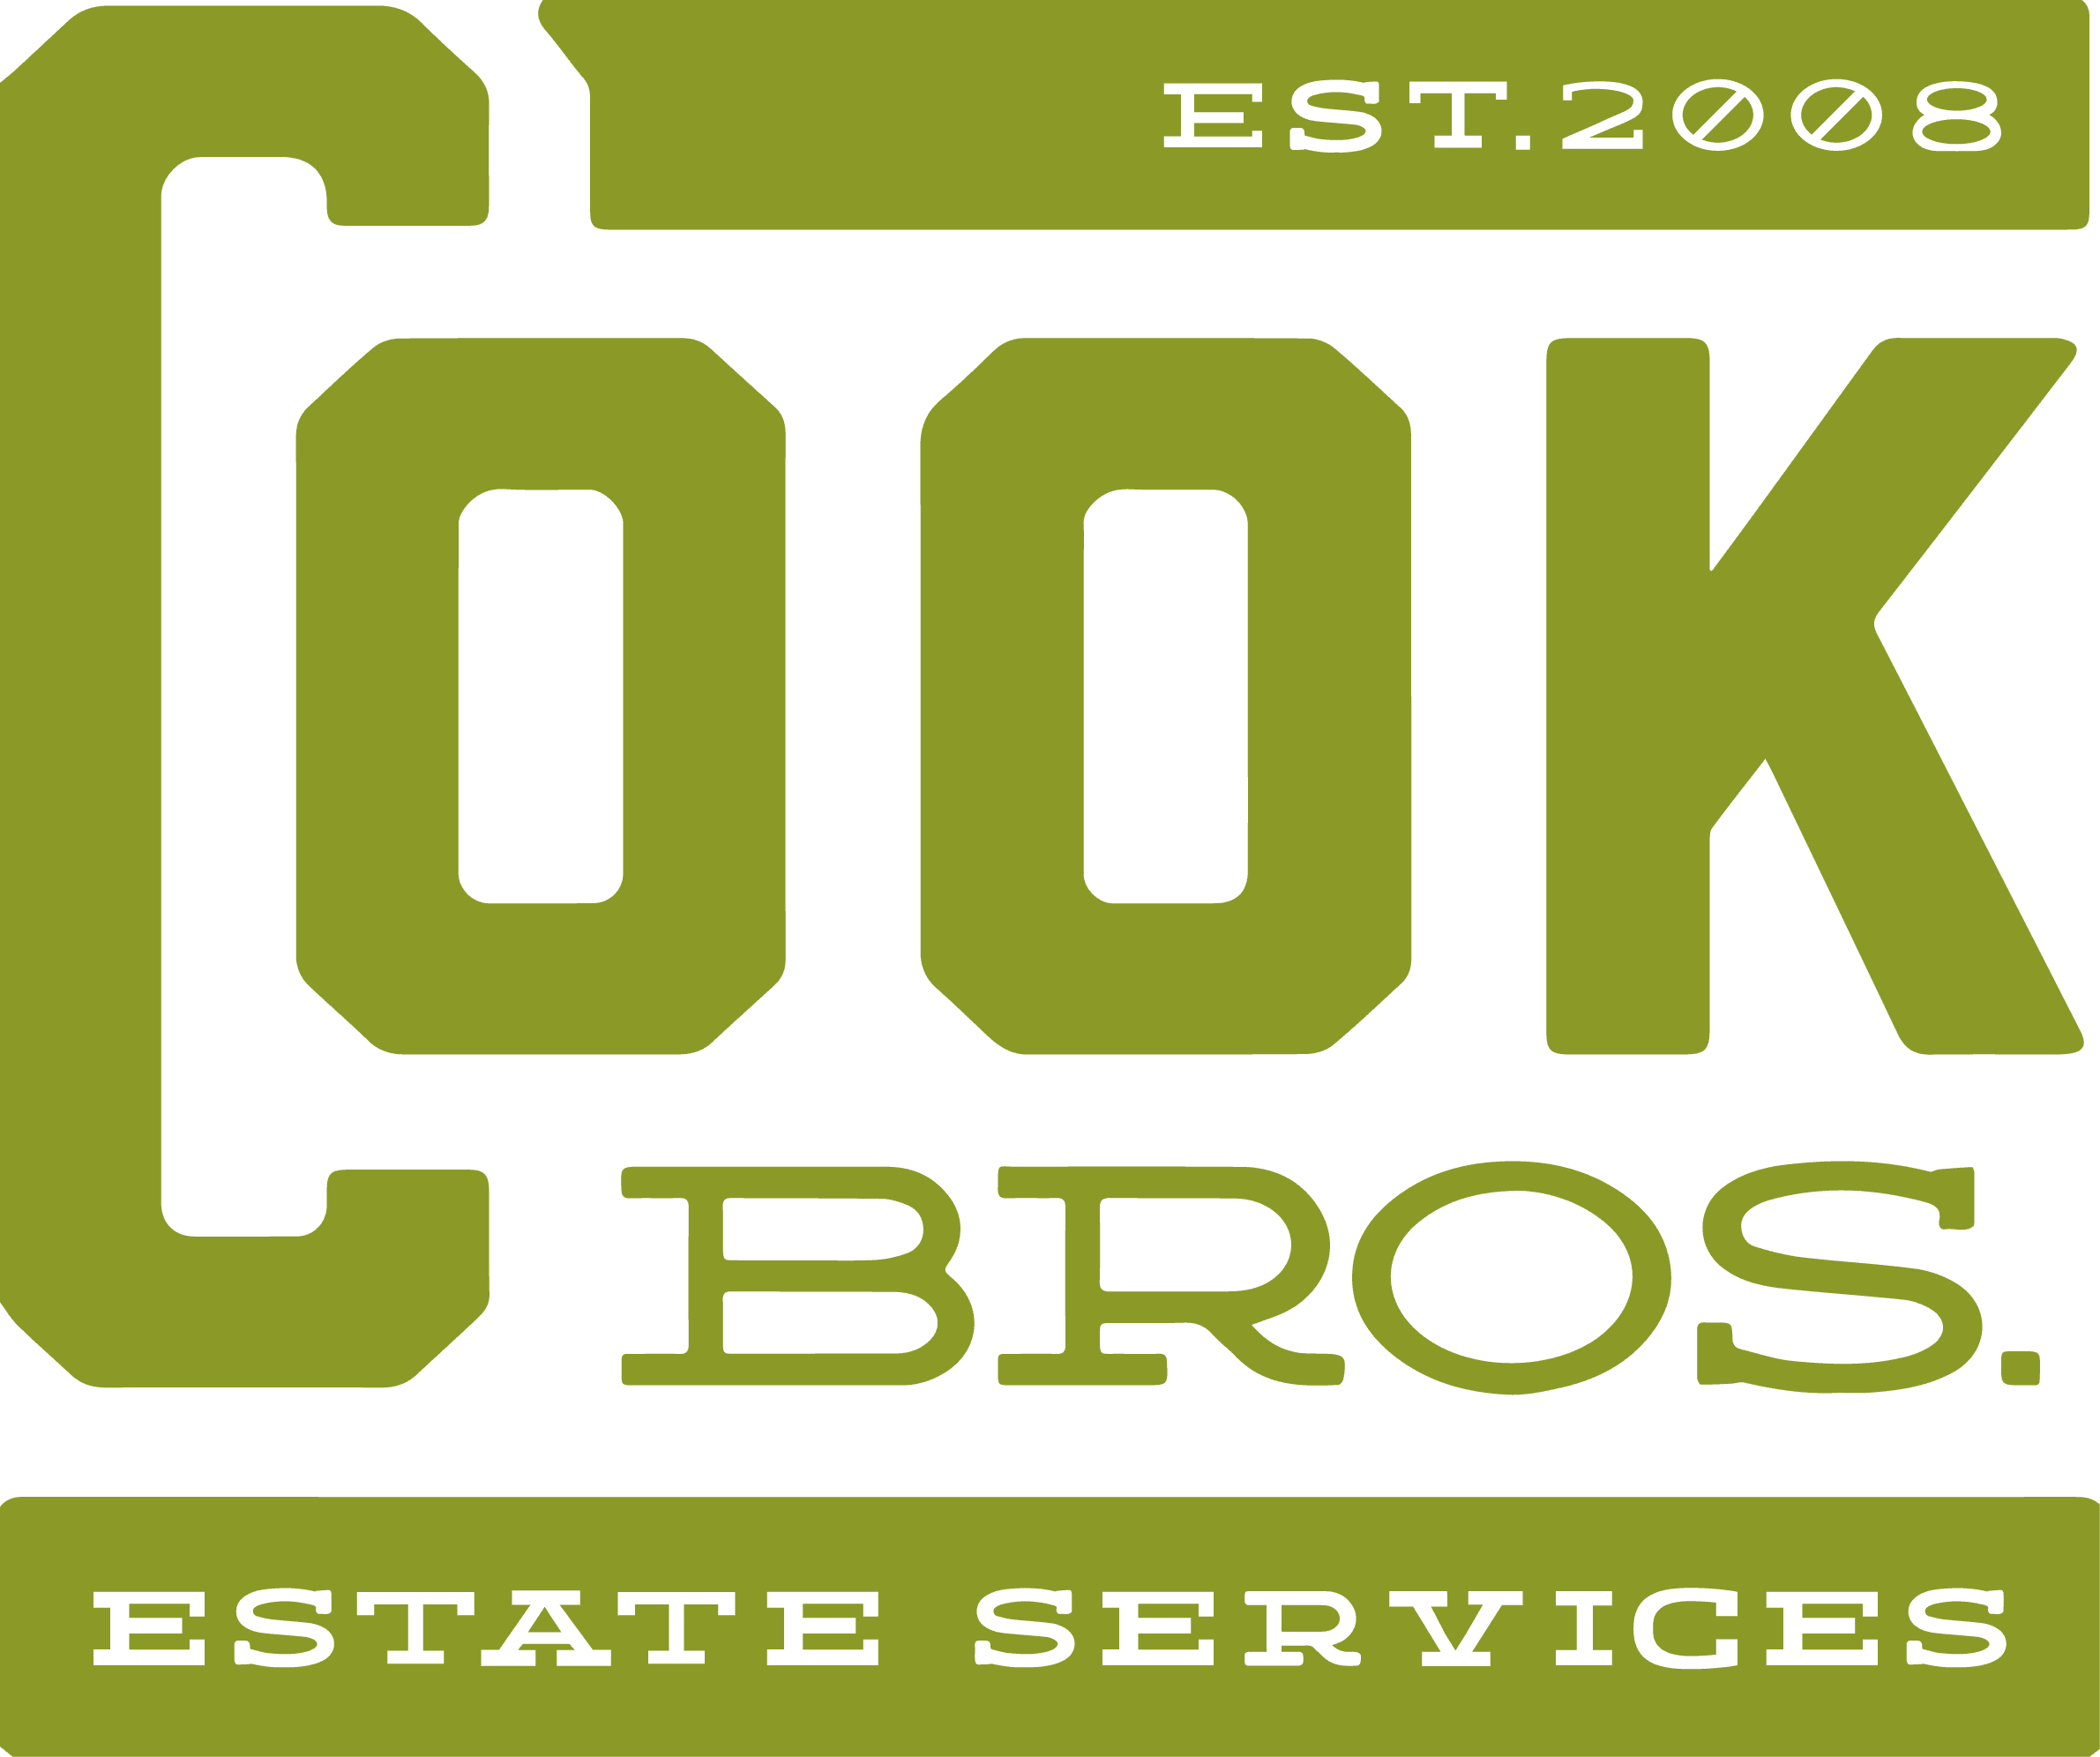 Cook Bros Estate Services, Lancaster PA